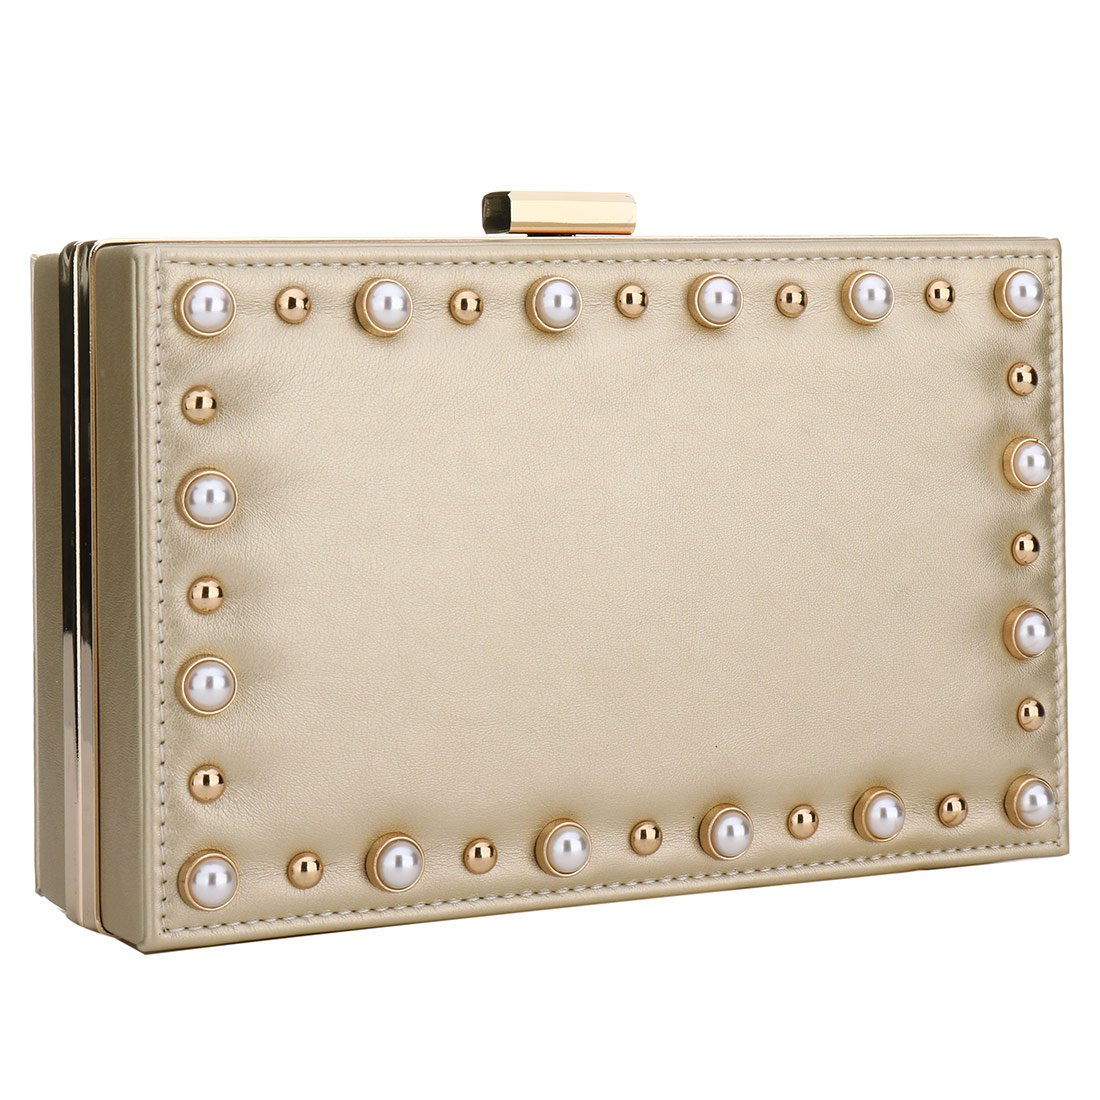 Leather Evening Clutches Purse Pearl Beaded Evening Handbag For Prom Cocktail Wedding Women/Girls (Gold)